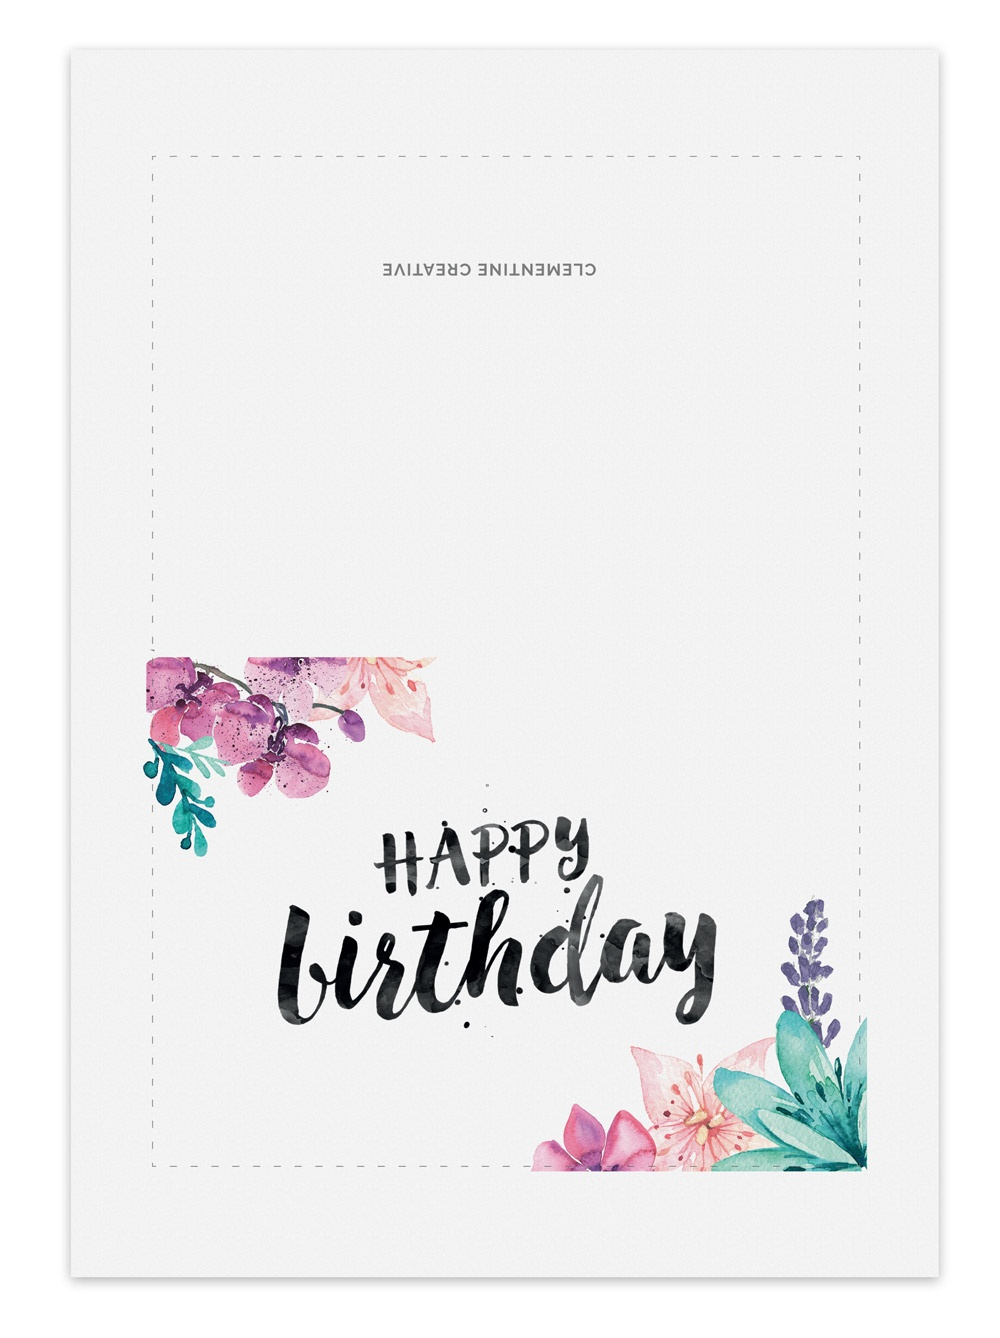 Happy Birthday Cards To Print Free — Birthday Invitation Examples - Free Printable Birthday Cards For Her